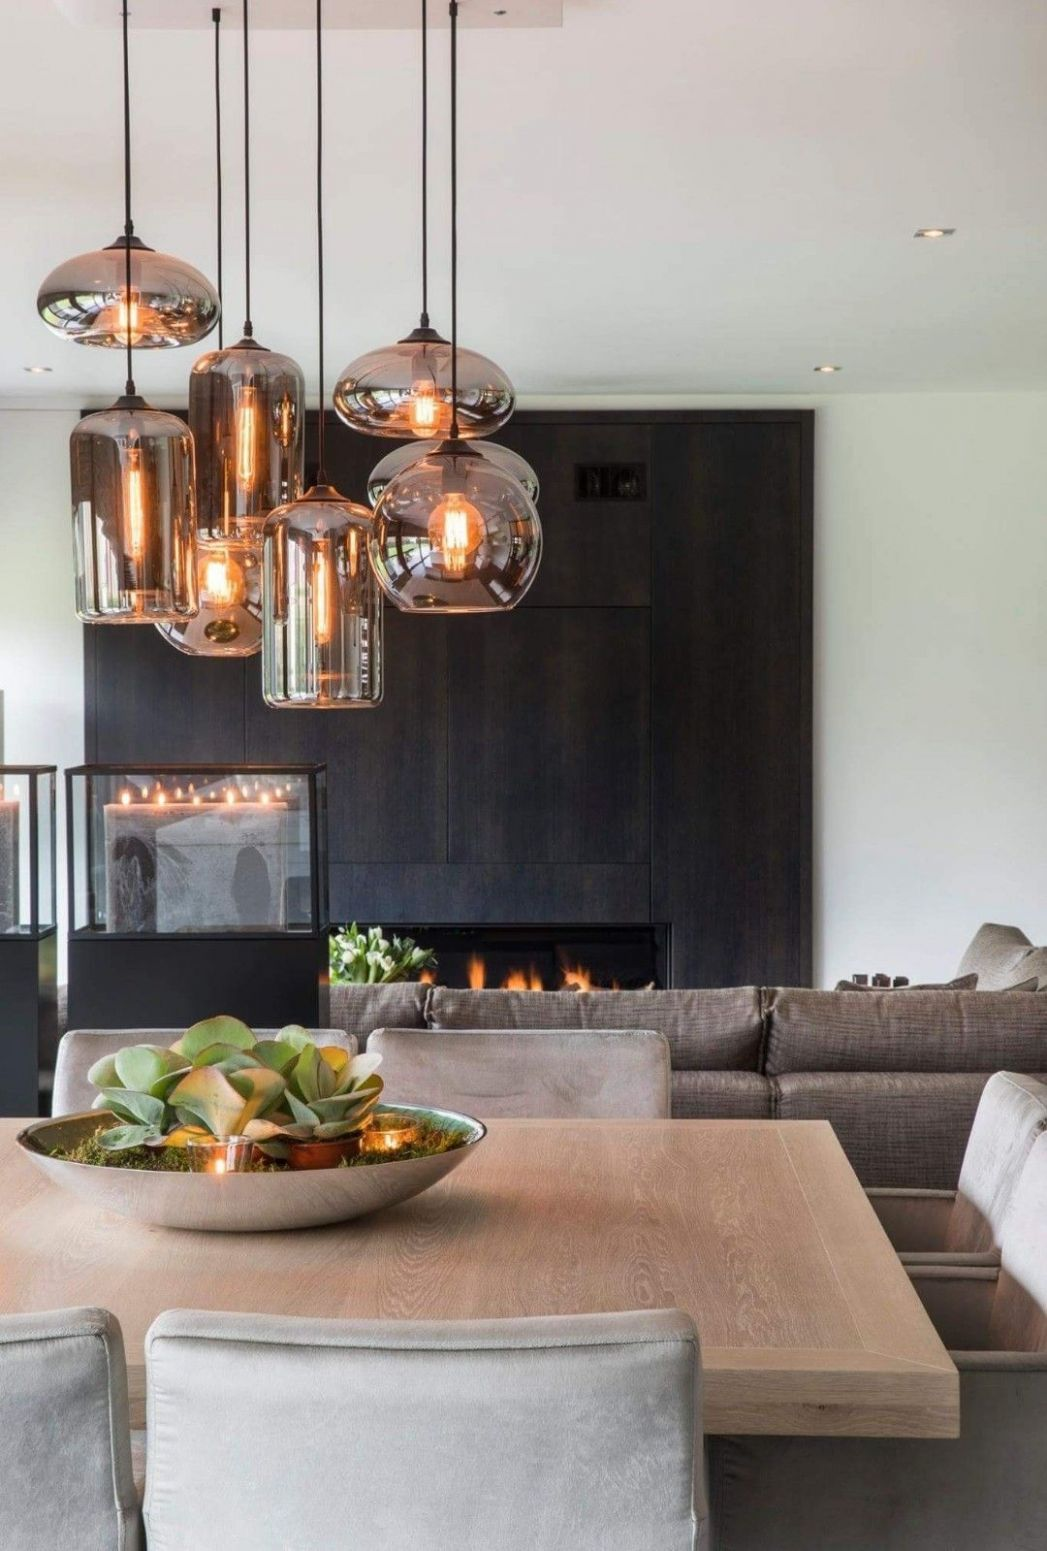 What's Hot On Pinterest: These Are The Best Dining Room Lighting ...